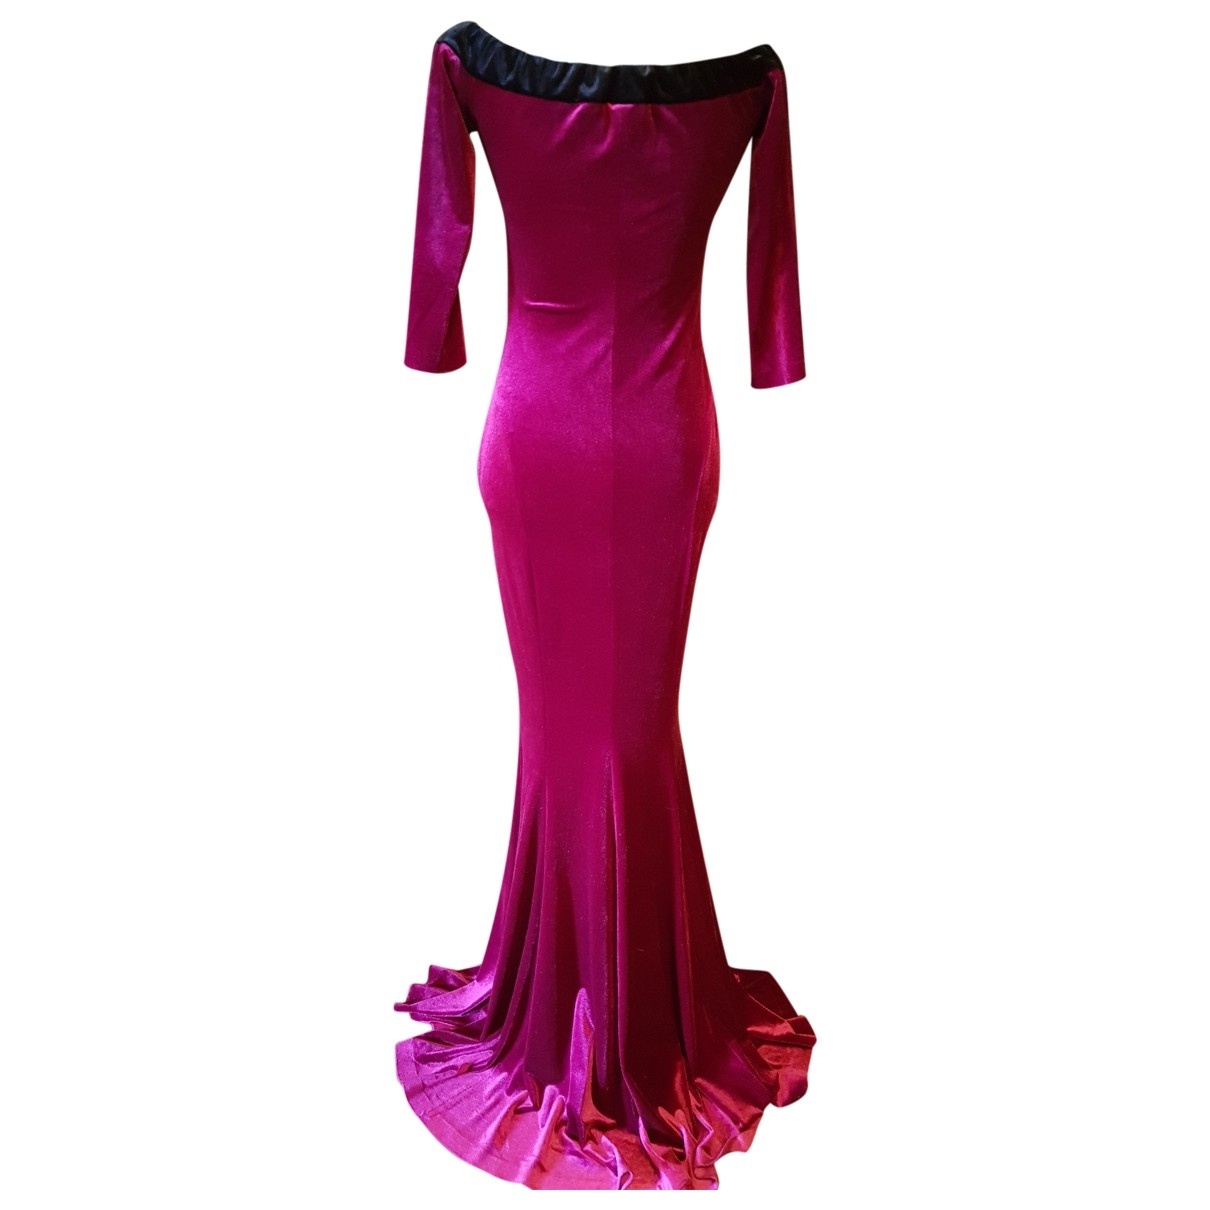 Norma Kamali \N Kleid in  Bordeauxrot Polyester